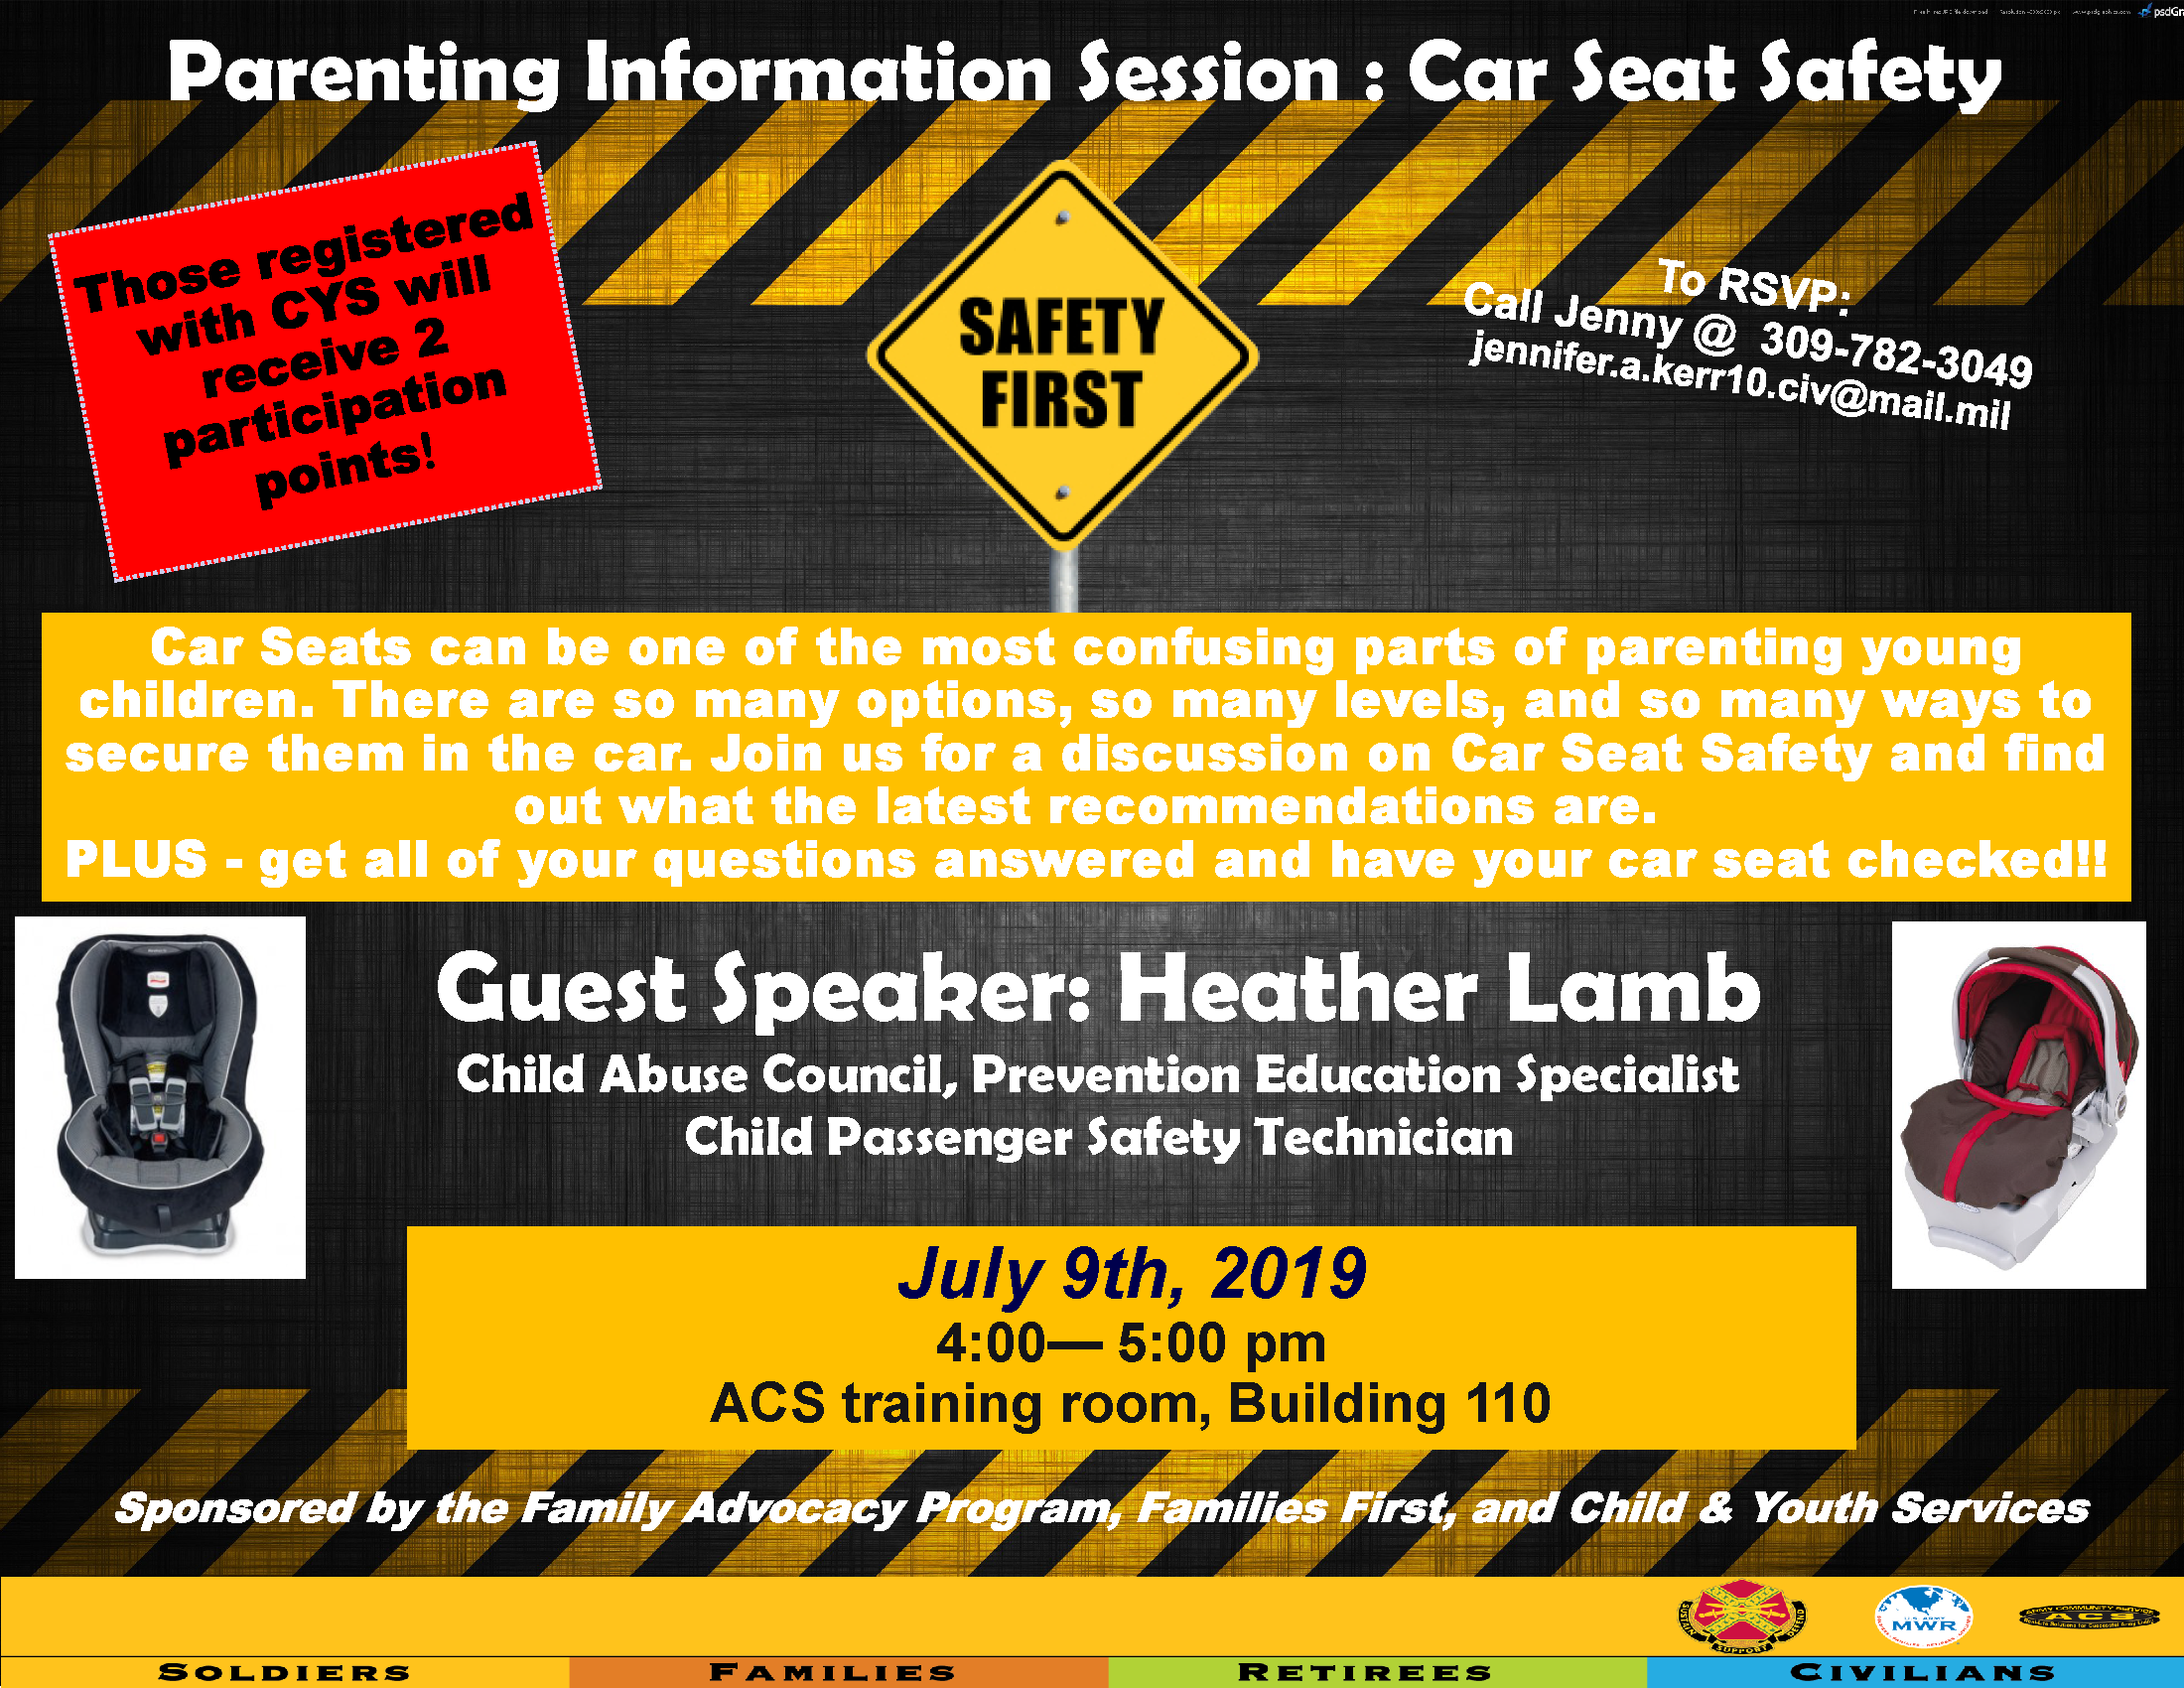 Parenting Information Session: Car Seat Safety